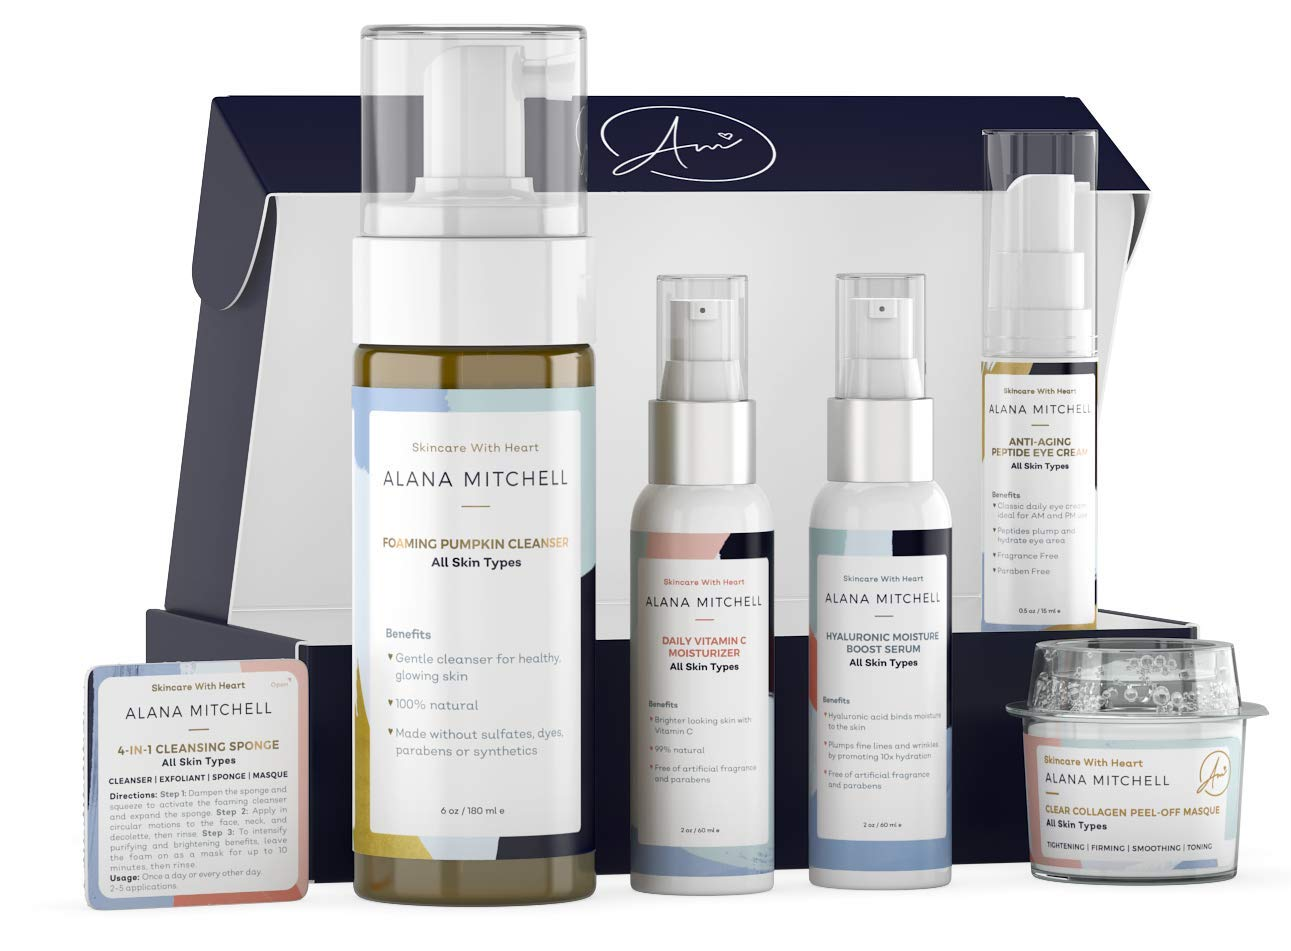 Anti Aging All Skin Types 7 piece Set with Eye Cream, Face Cleanser, Vitamin C Moisturizer, Hyaluronic Serum, Collagen Peel Off Mask & Travel Cleanser By Alana Mitchell Exfoliate, Cleanse, Moisturize